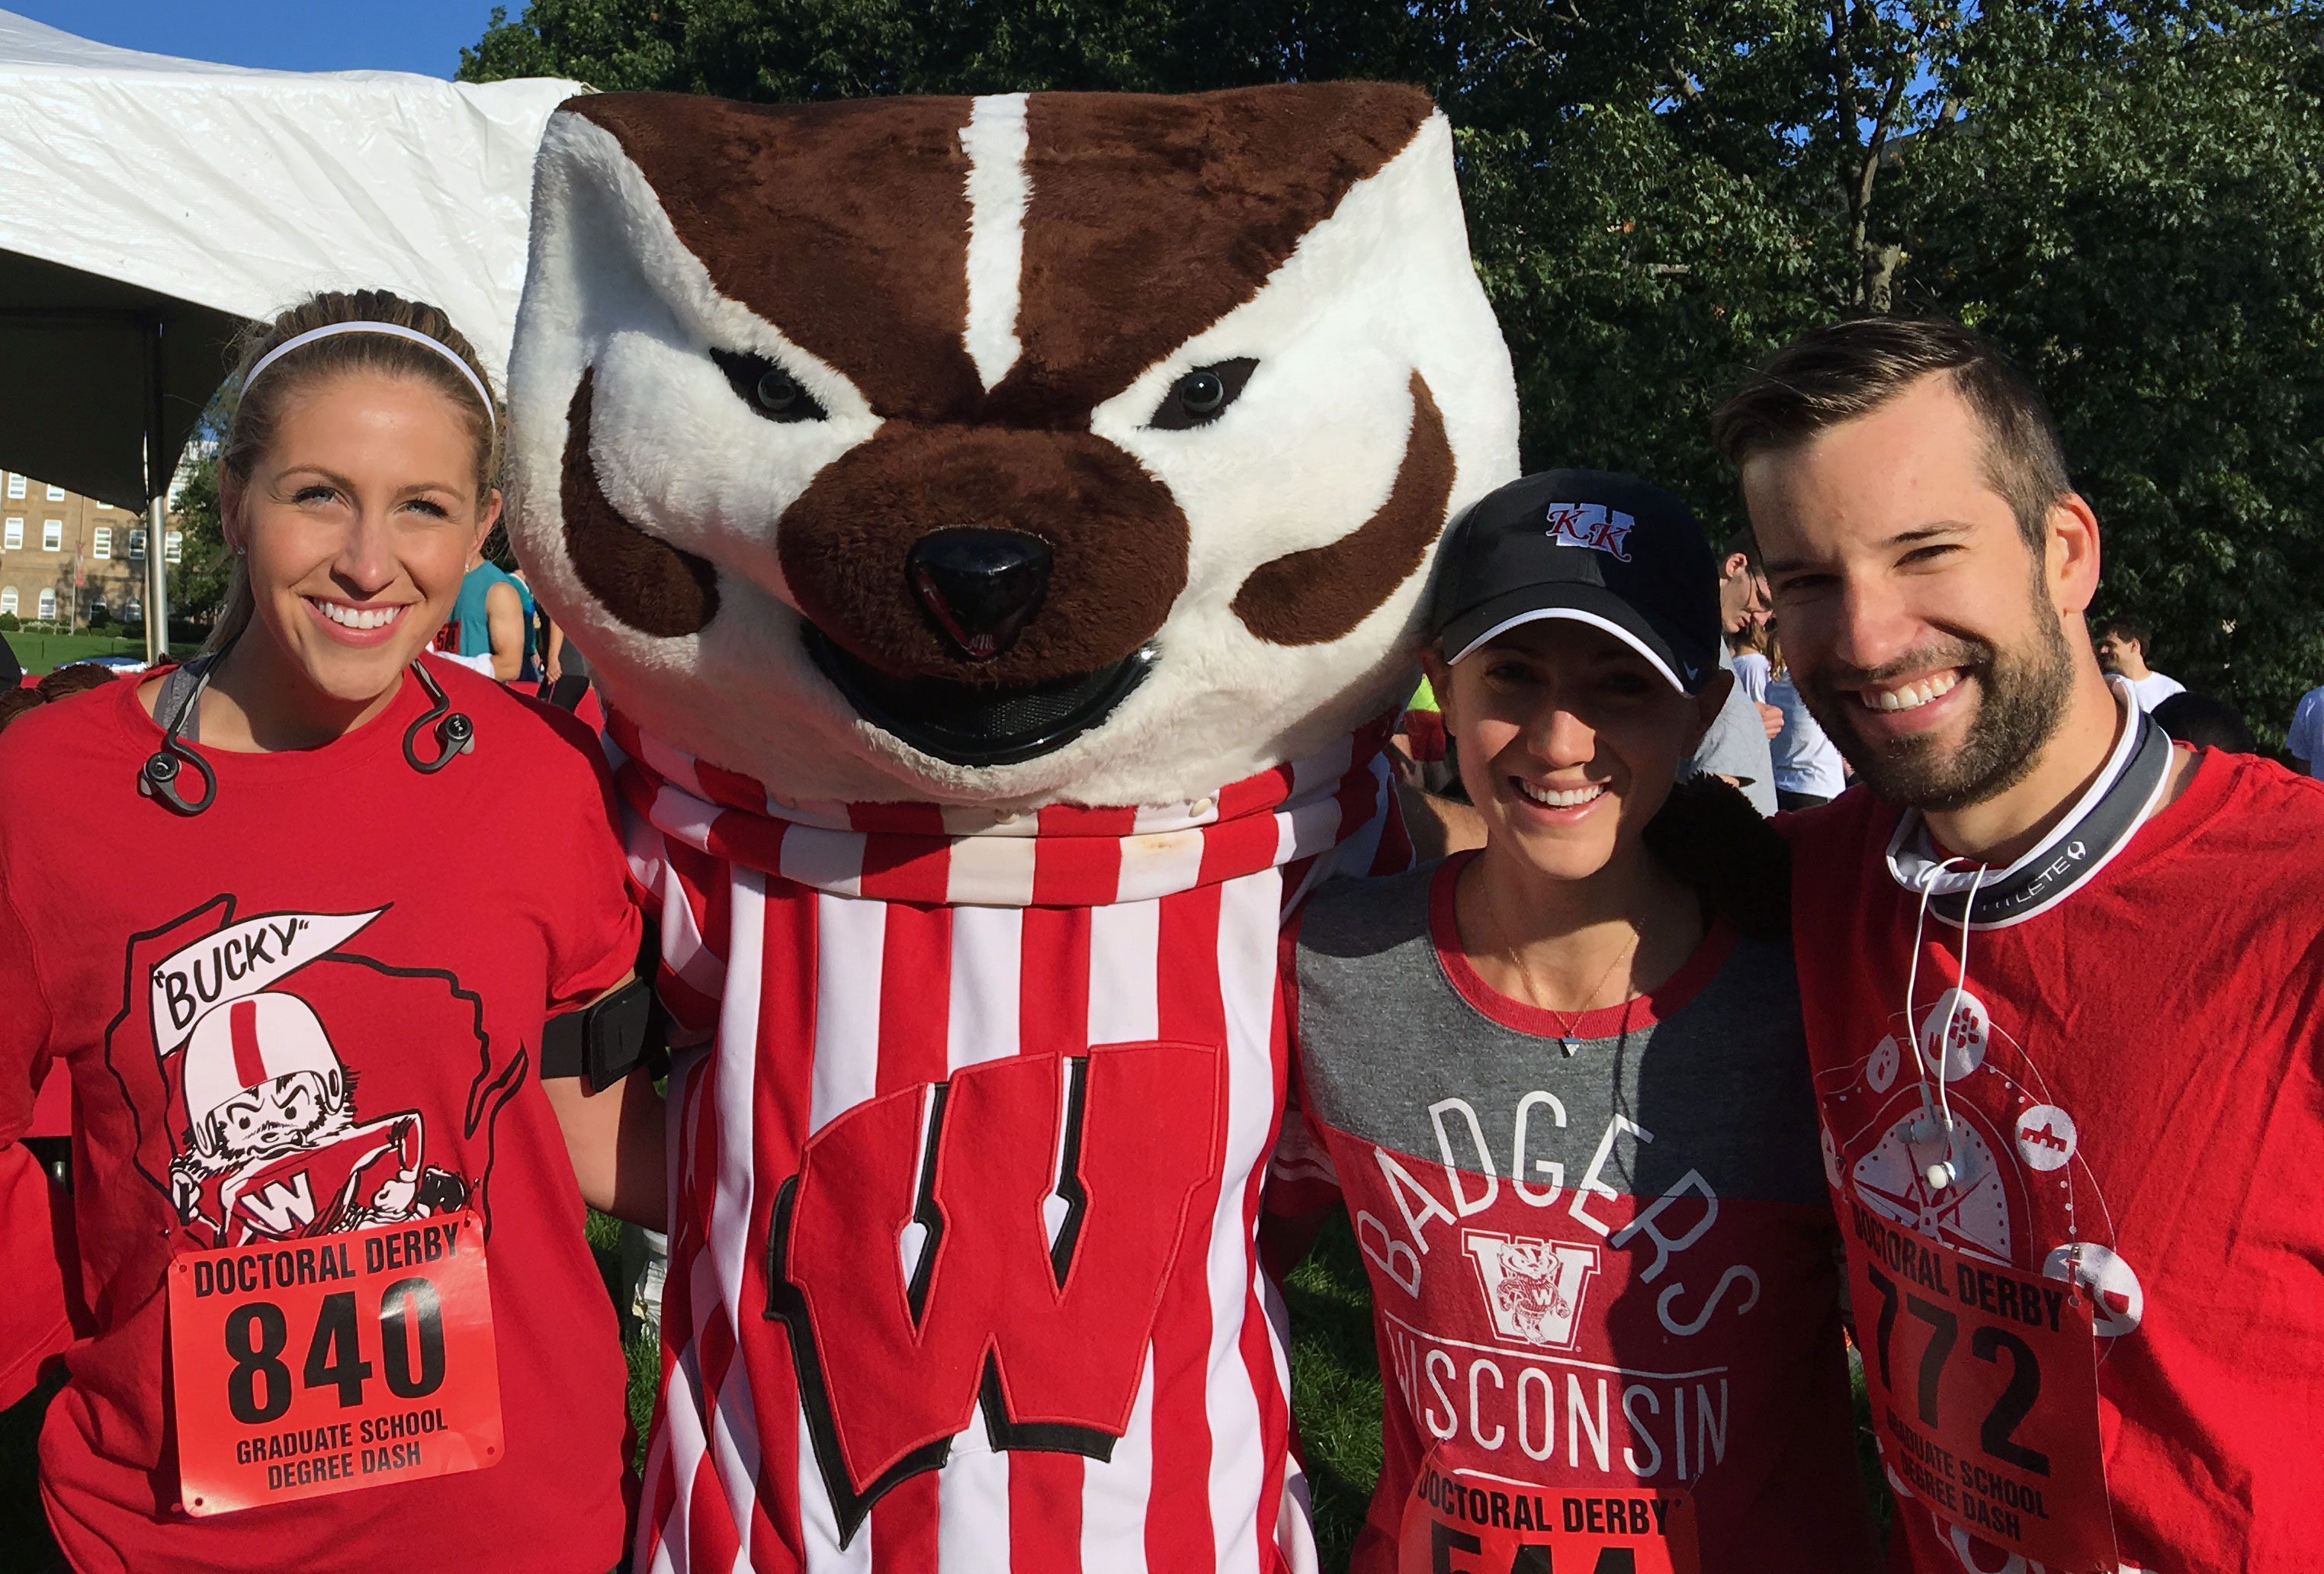 CSD students posing with Bucky Badger.